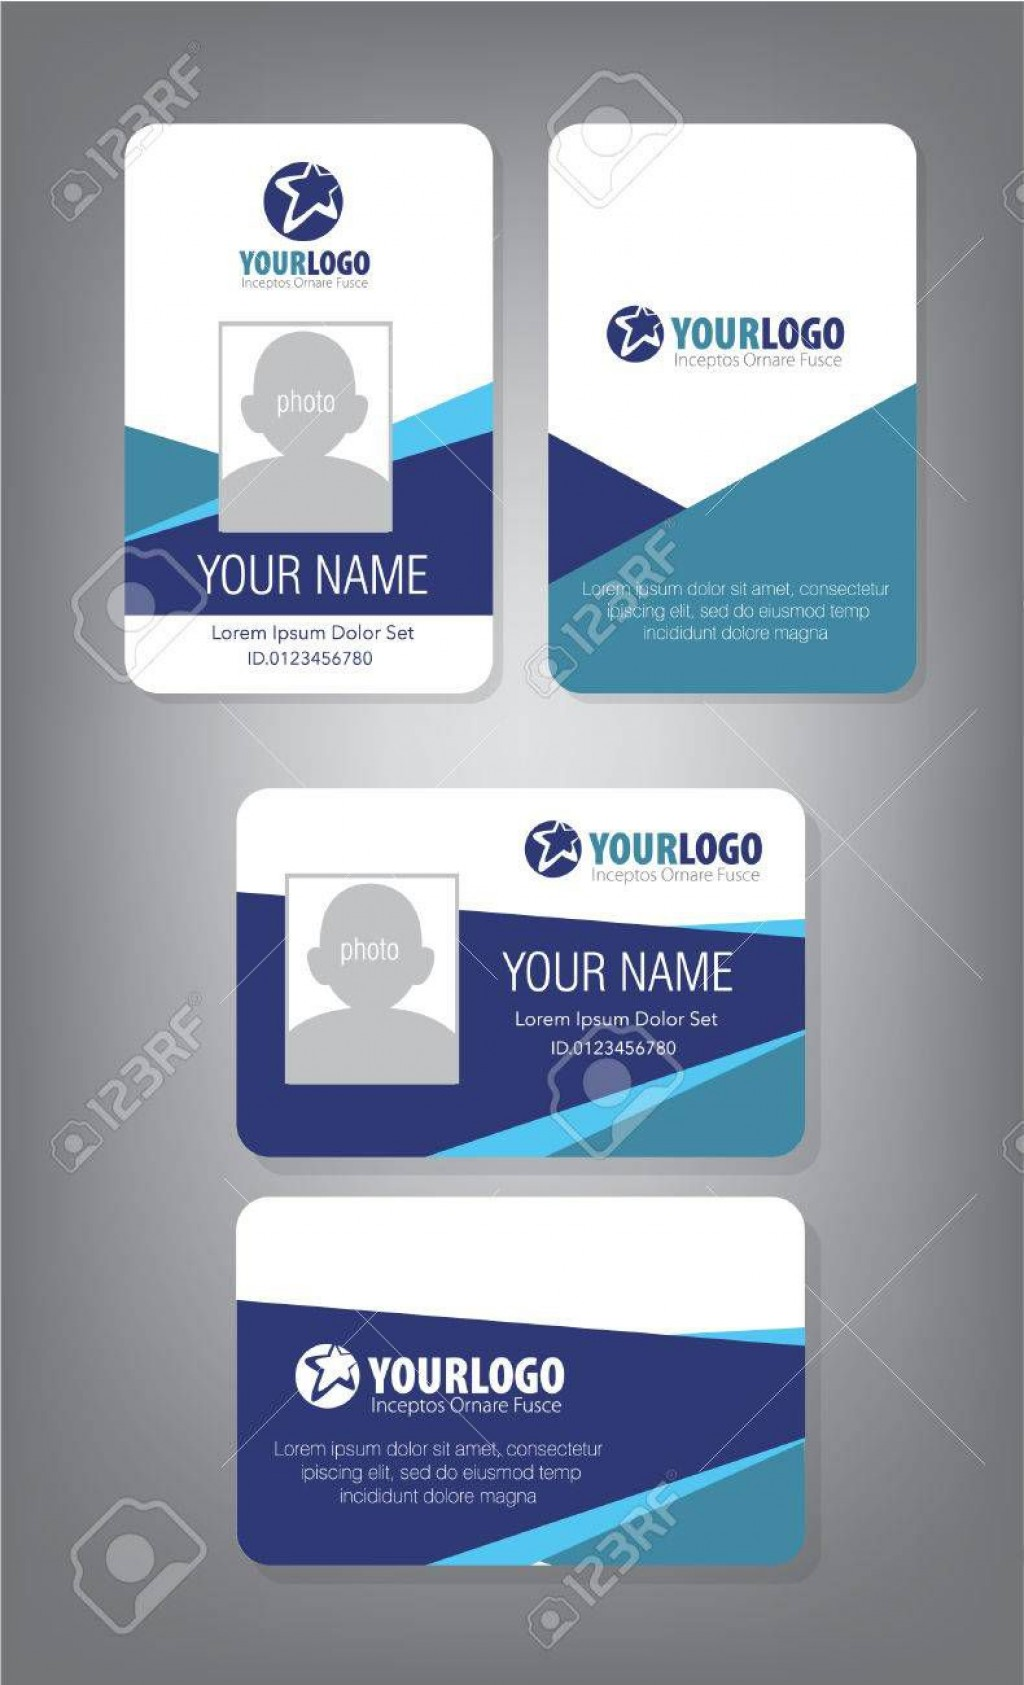 000 Magnificent Id Card Template Free High Resolution  Download Pdf DesignLarge